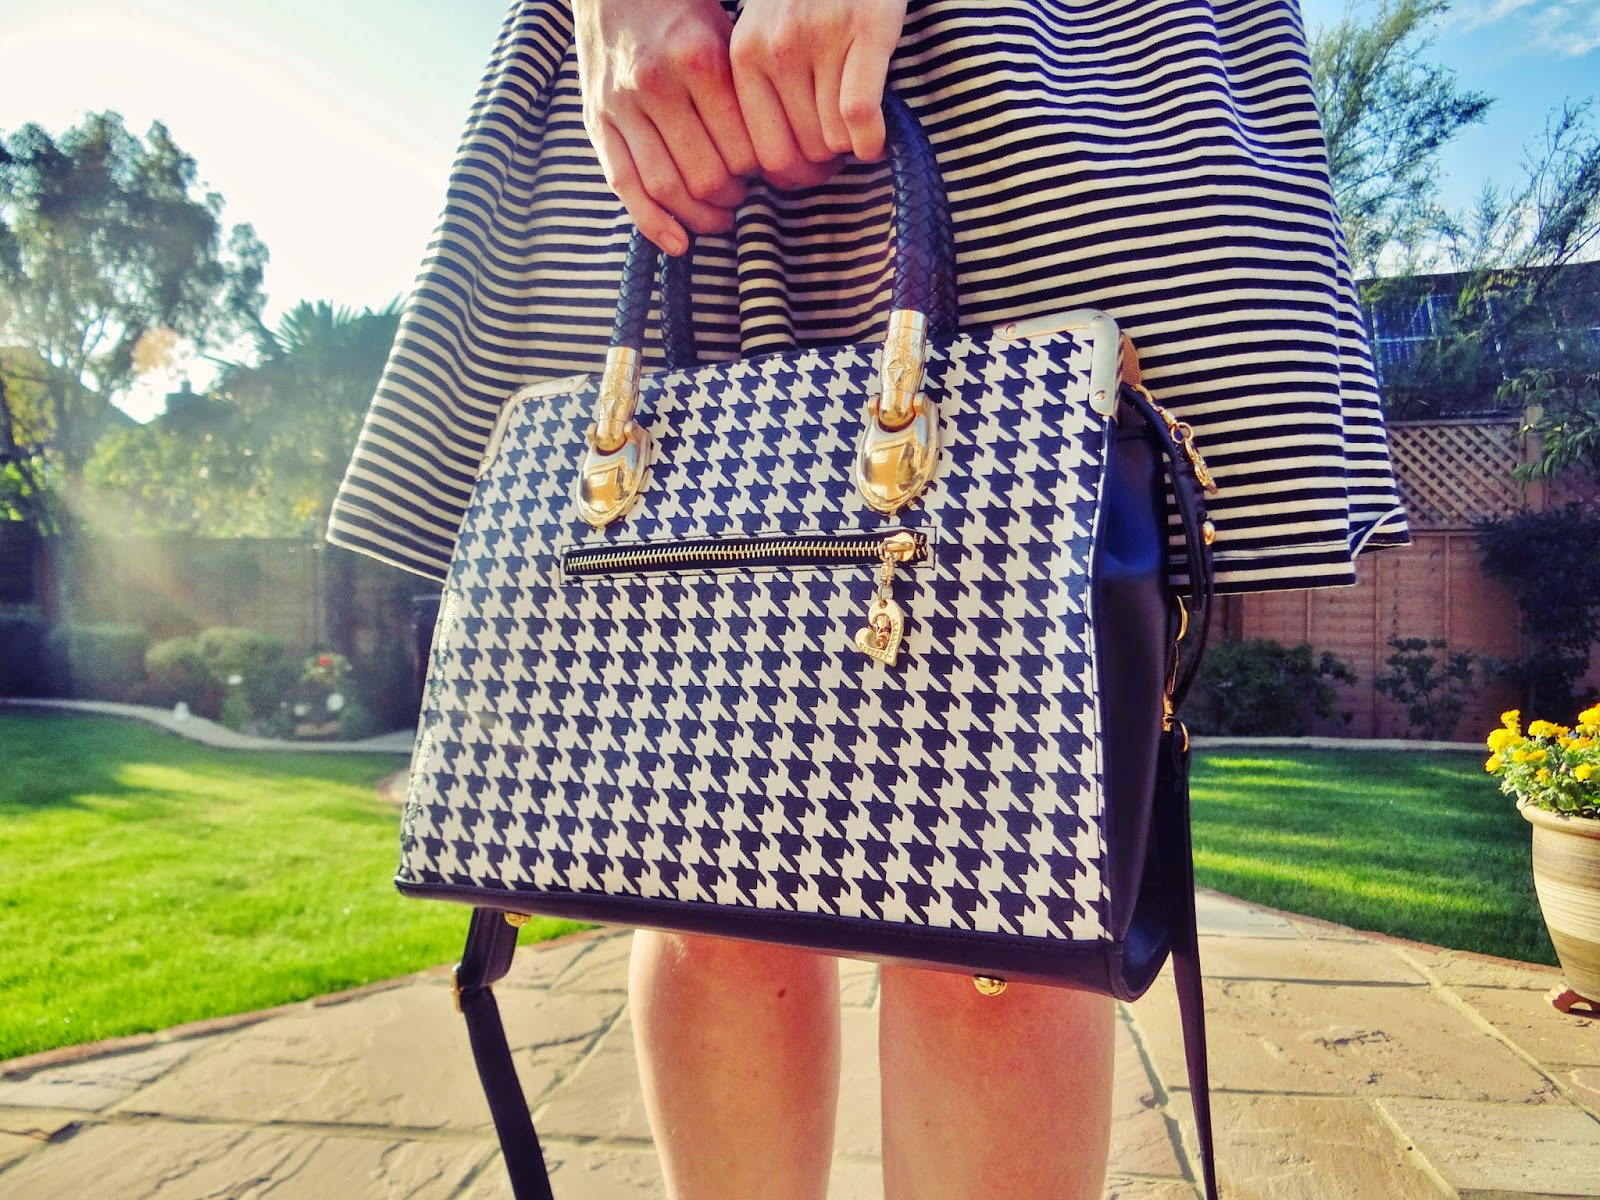 houndstooth handbag gold black white straps